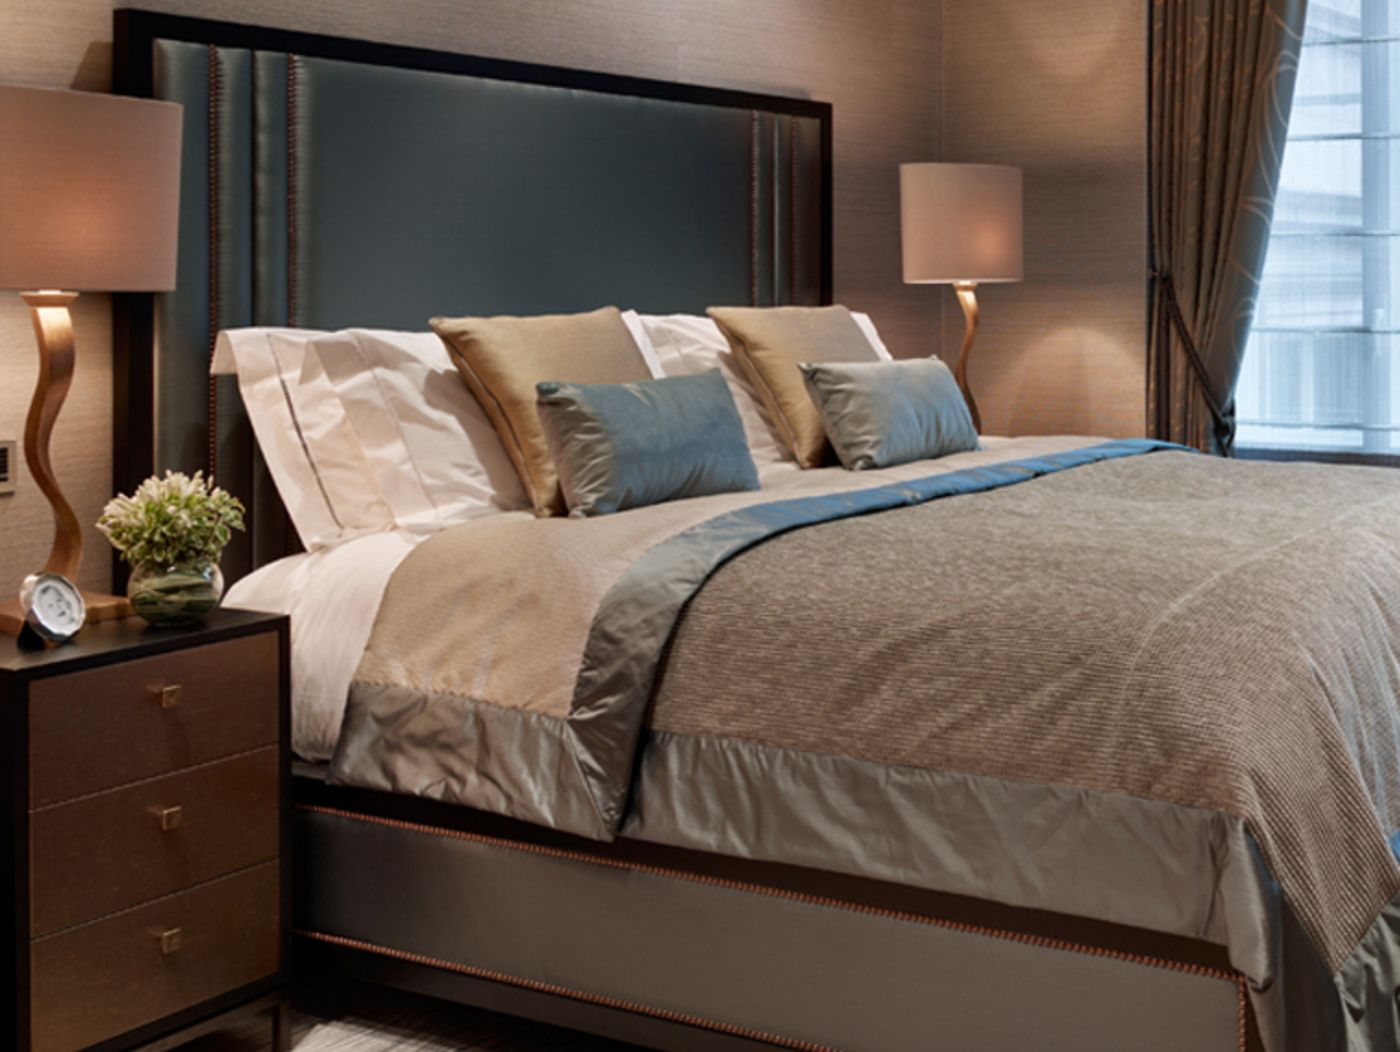 Hepburn headboard and frame in Raven Walnut with French